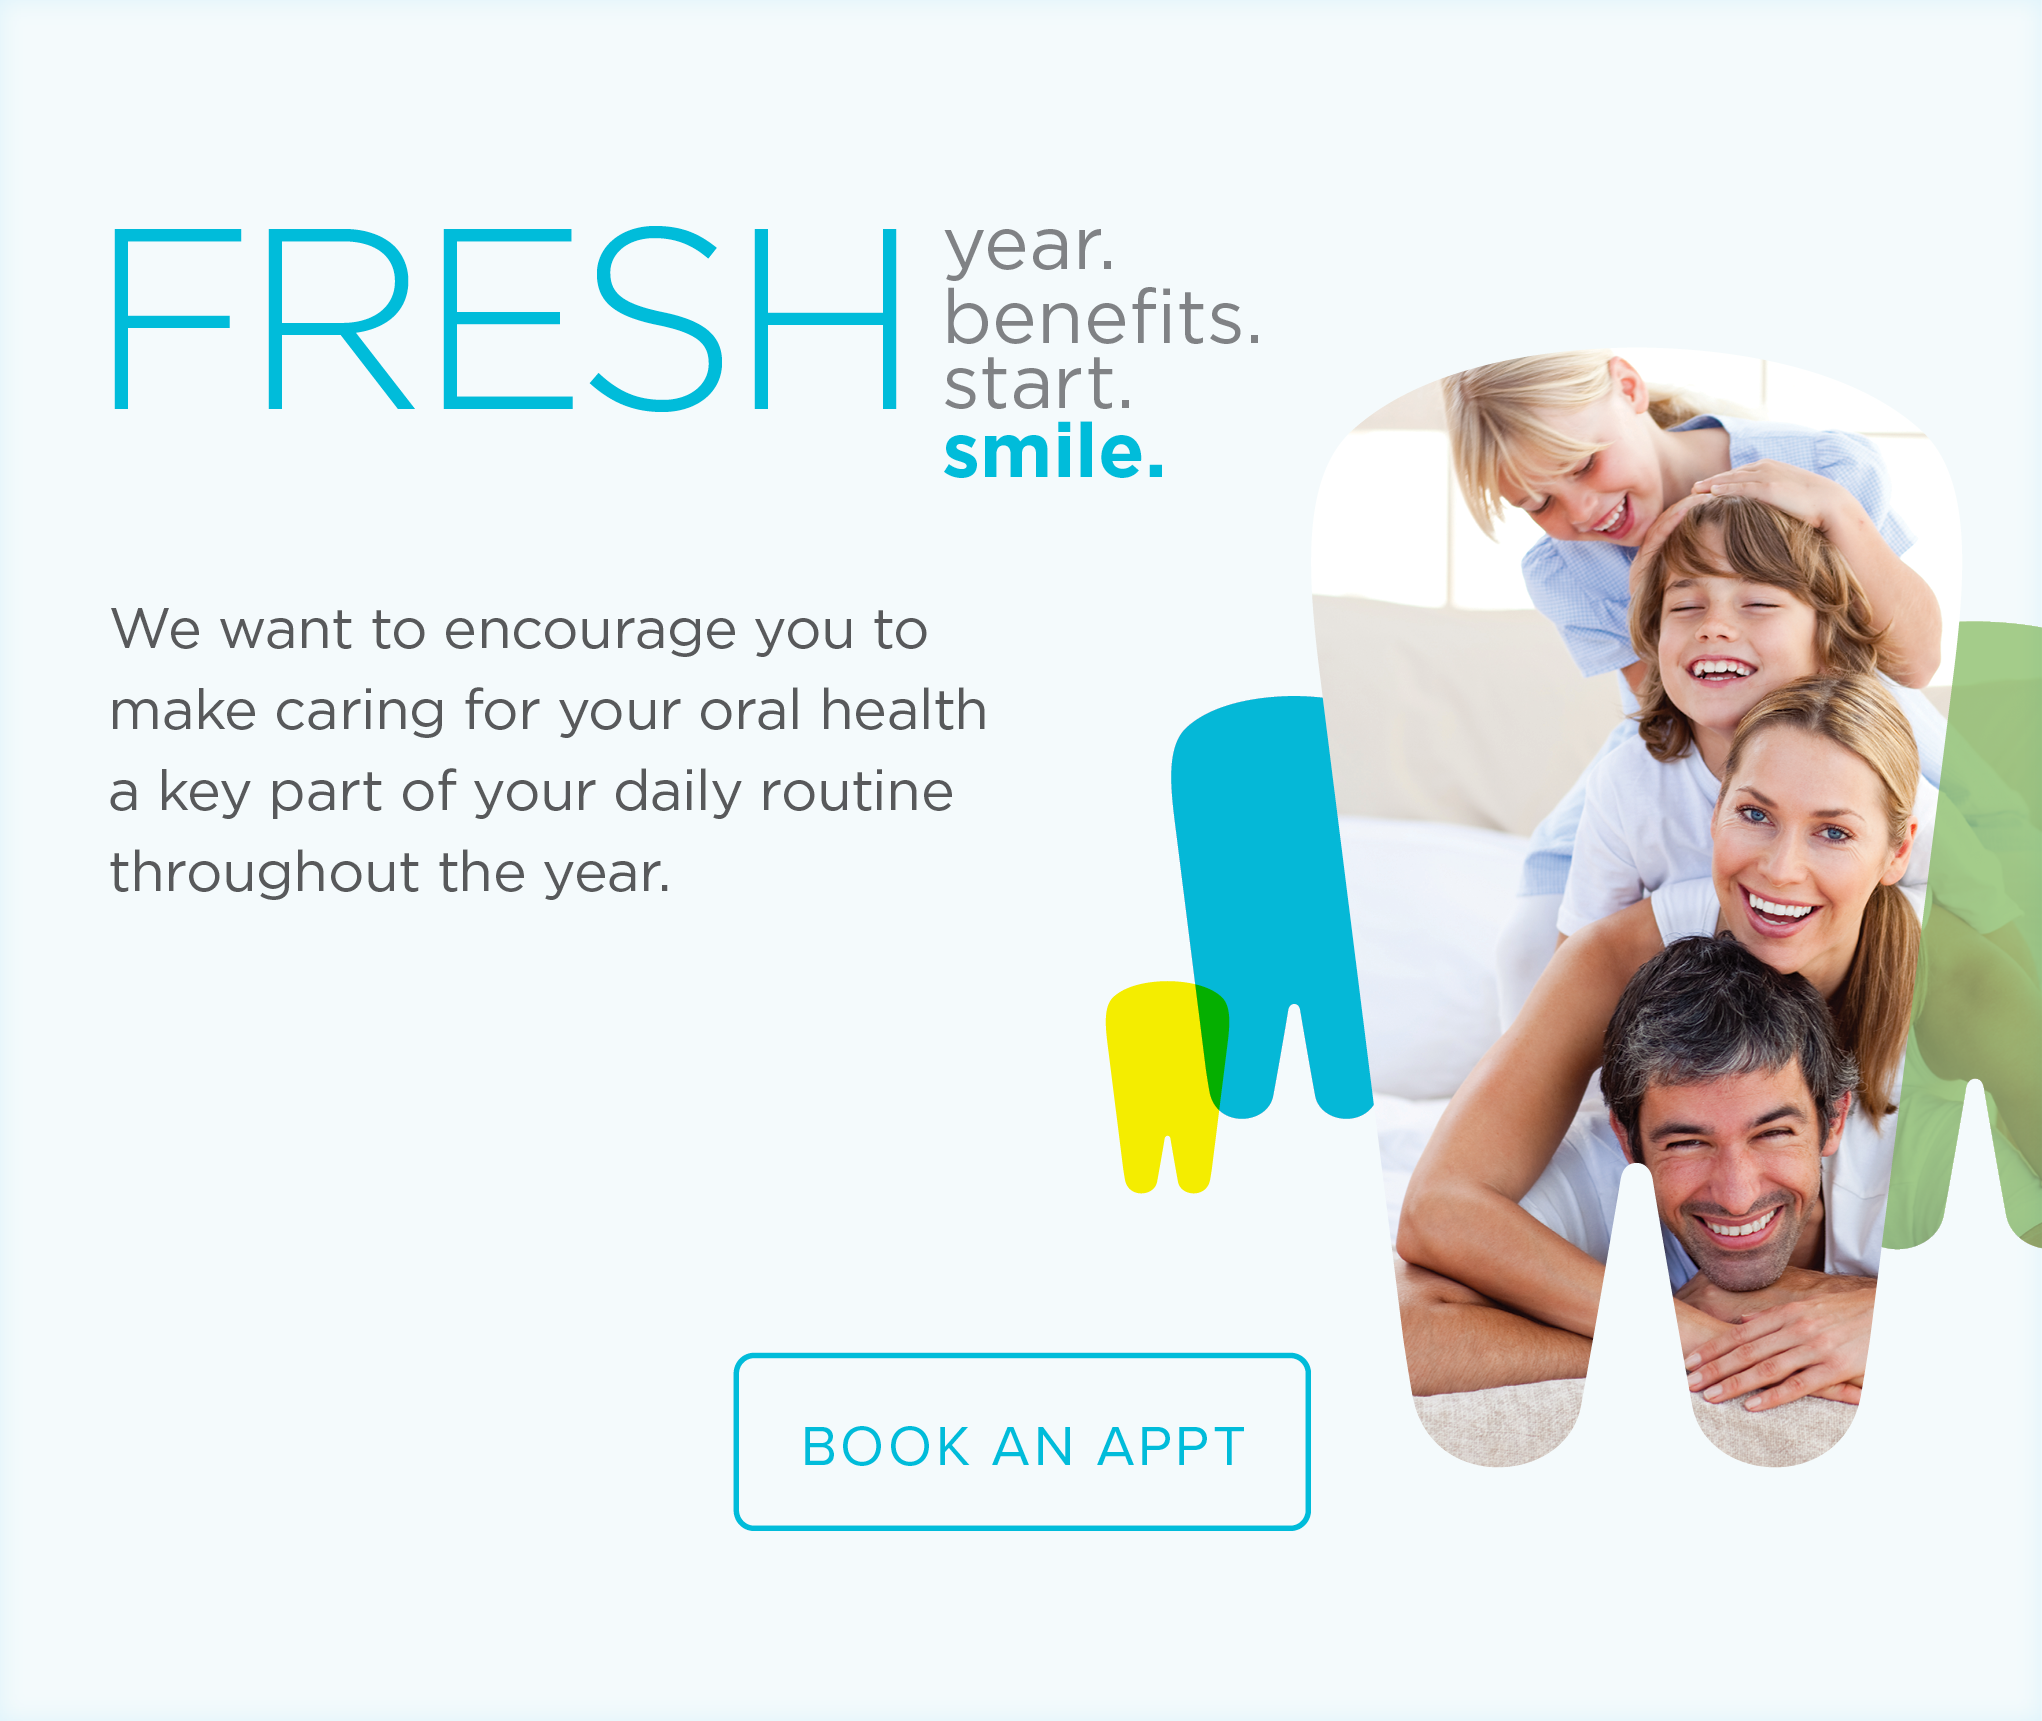 Pinole Modern Dentistry - Make the Most of Your Benefits